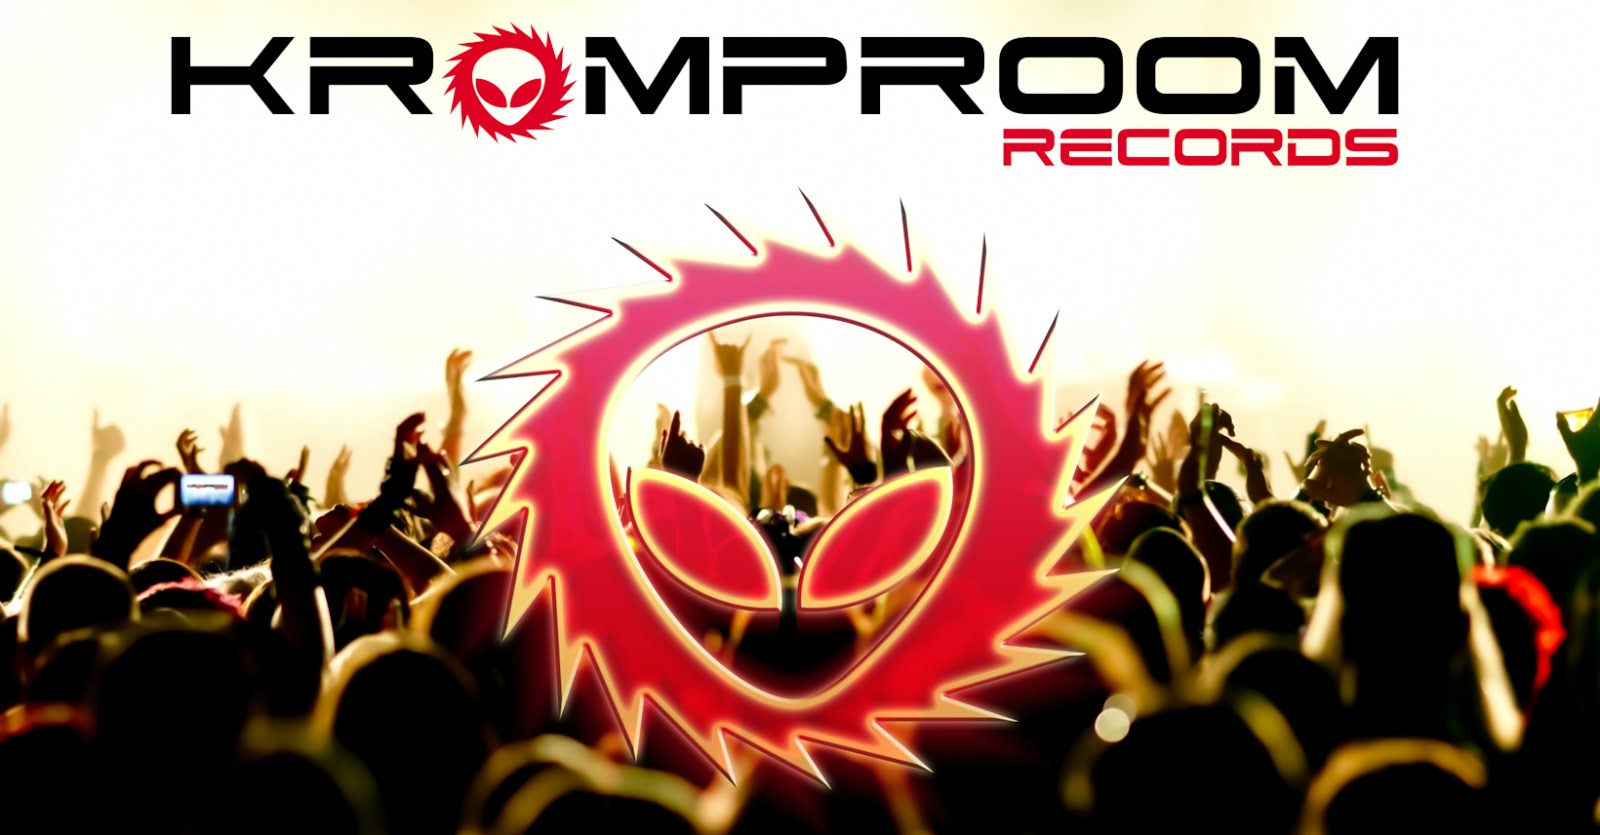 KROMP ROOM RECORDS